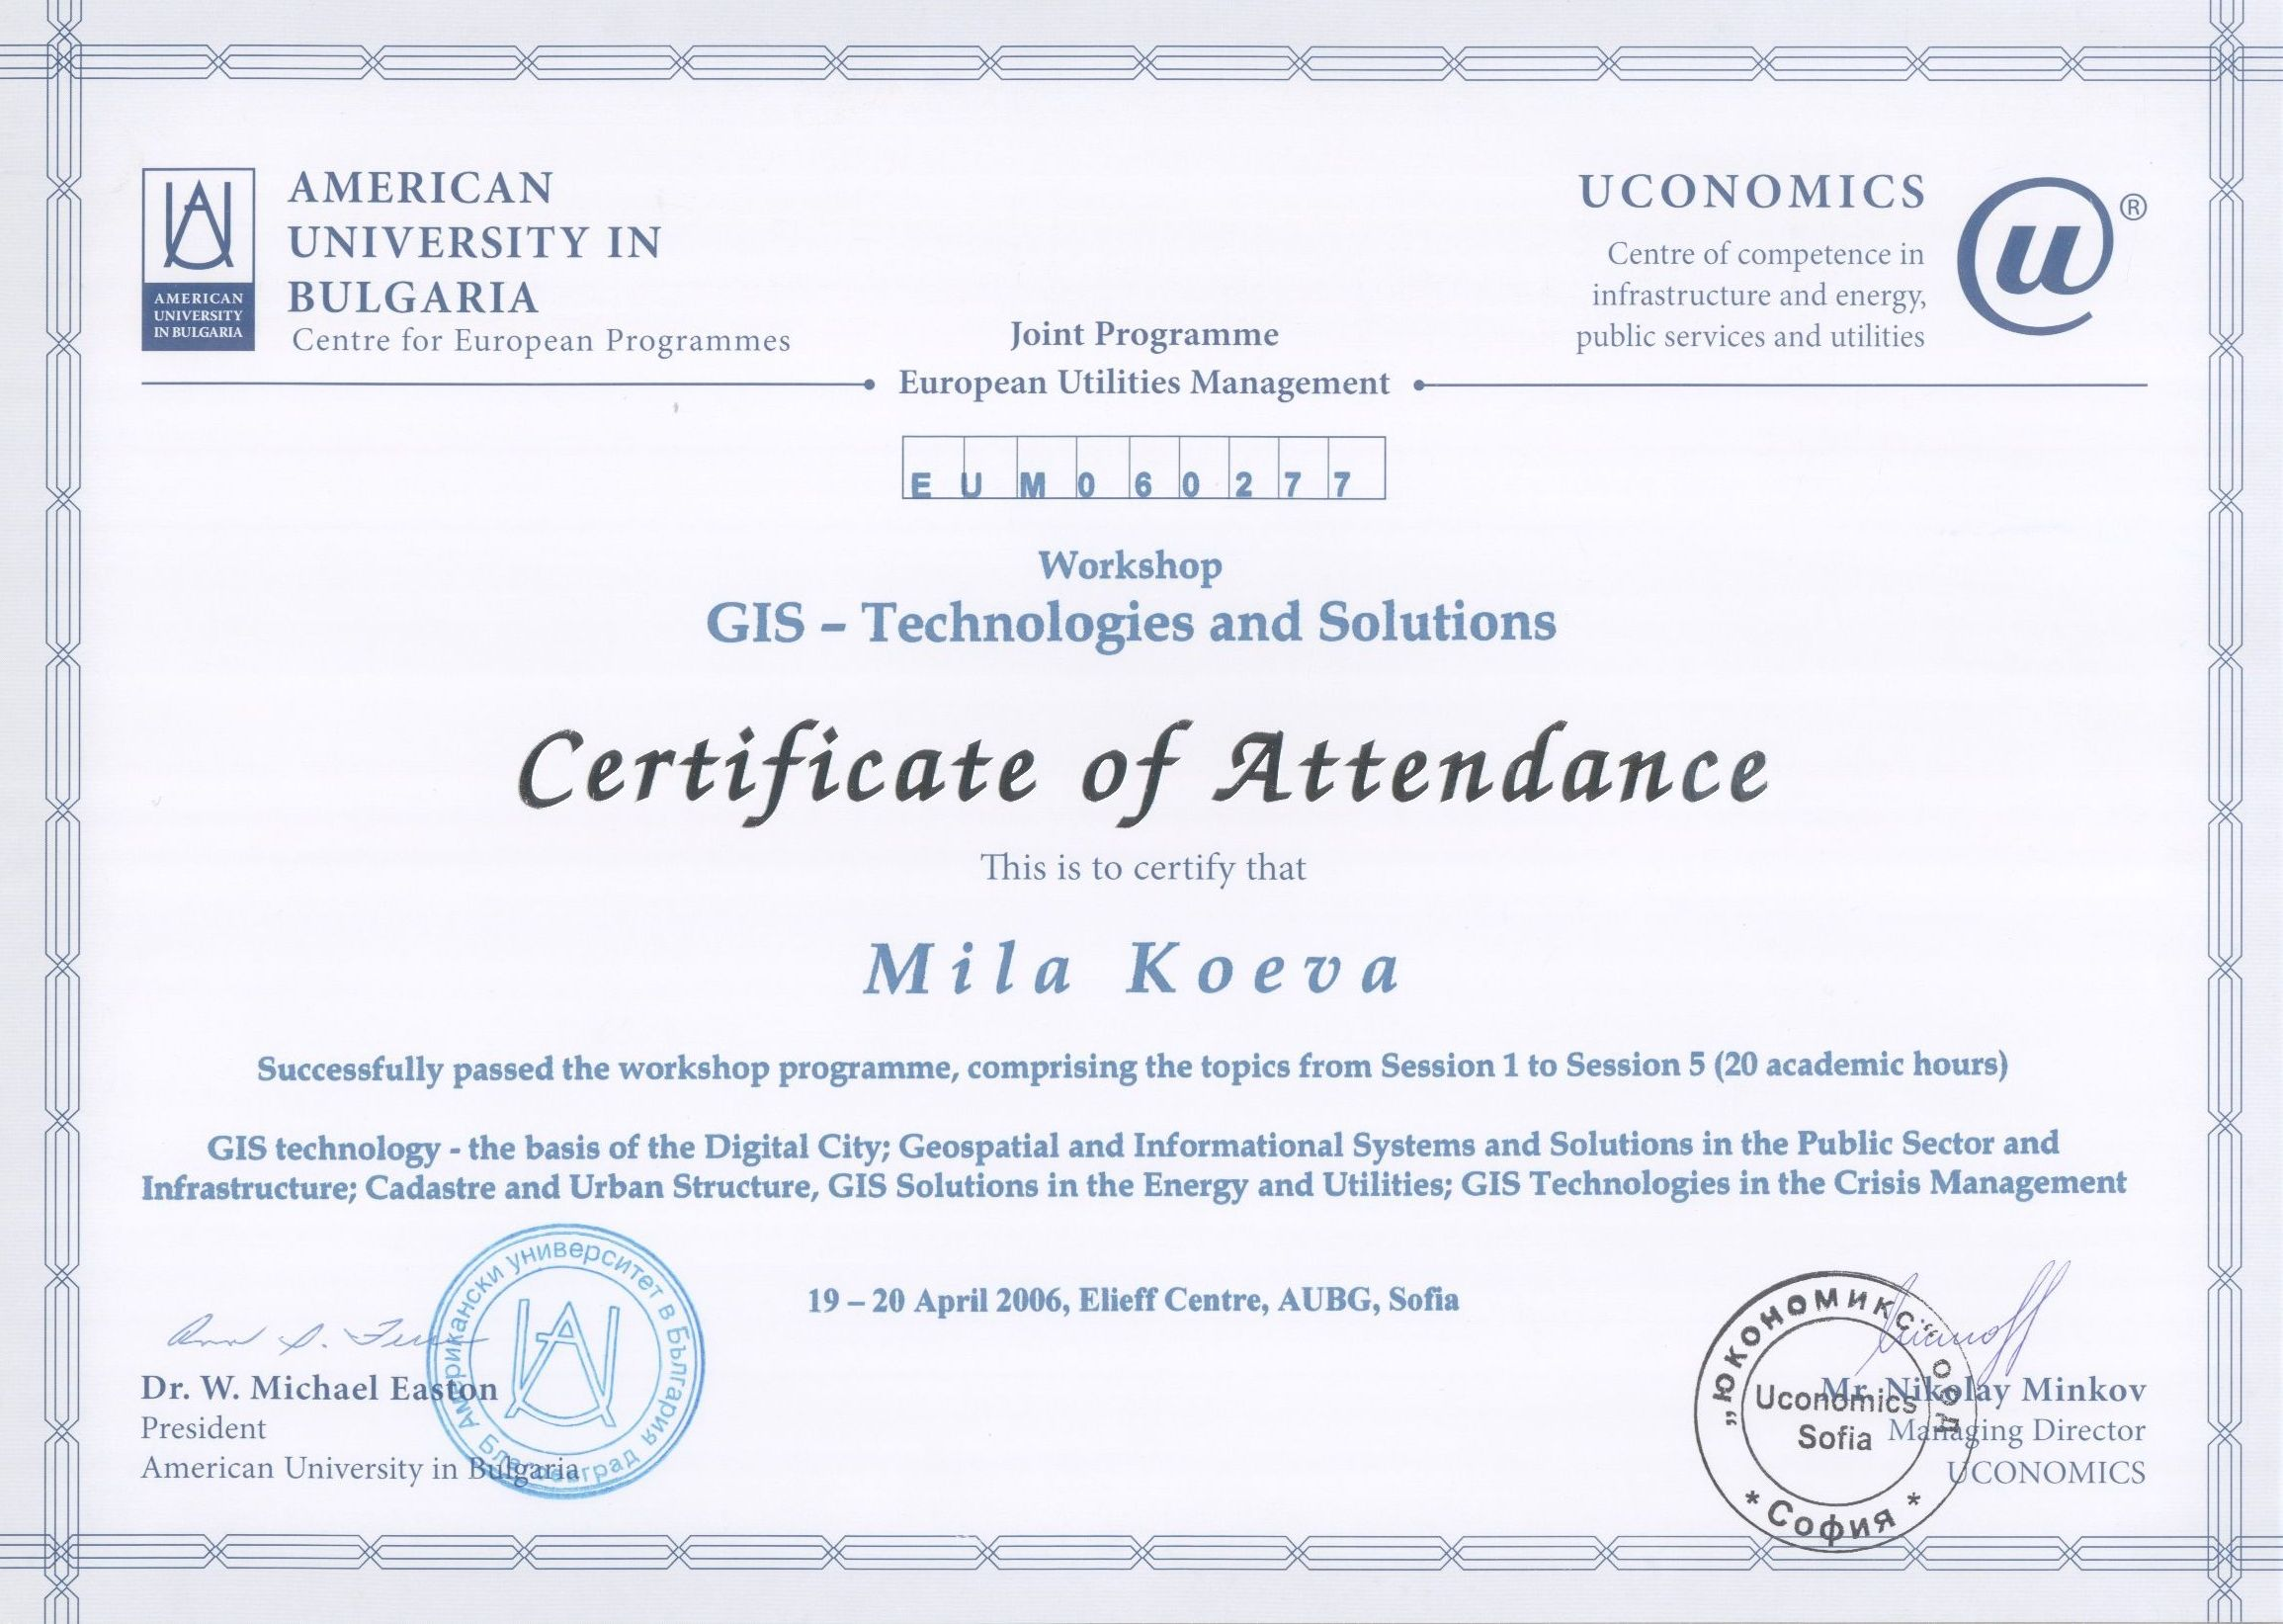 Education mila koeva personal web page certificate of attendance in workshop gis xflitez Gallery